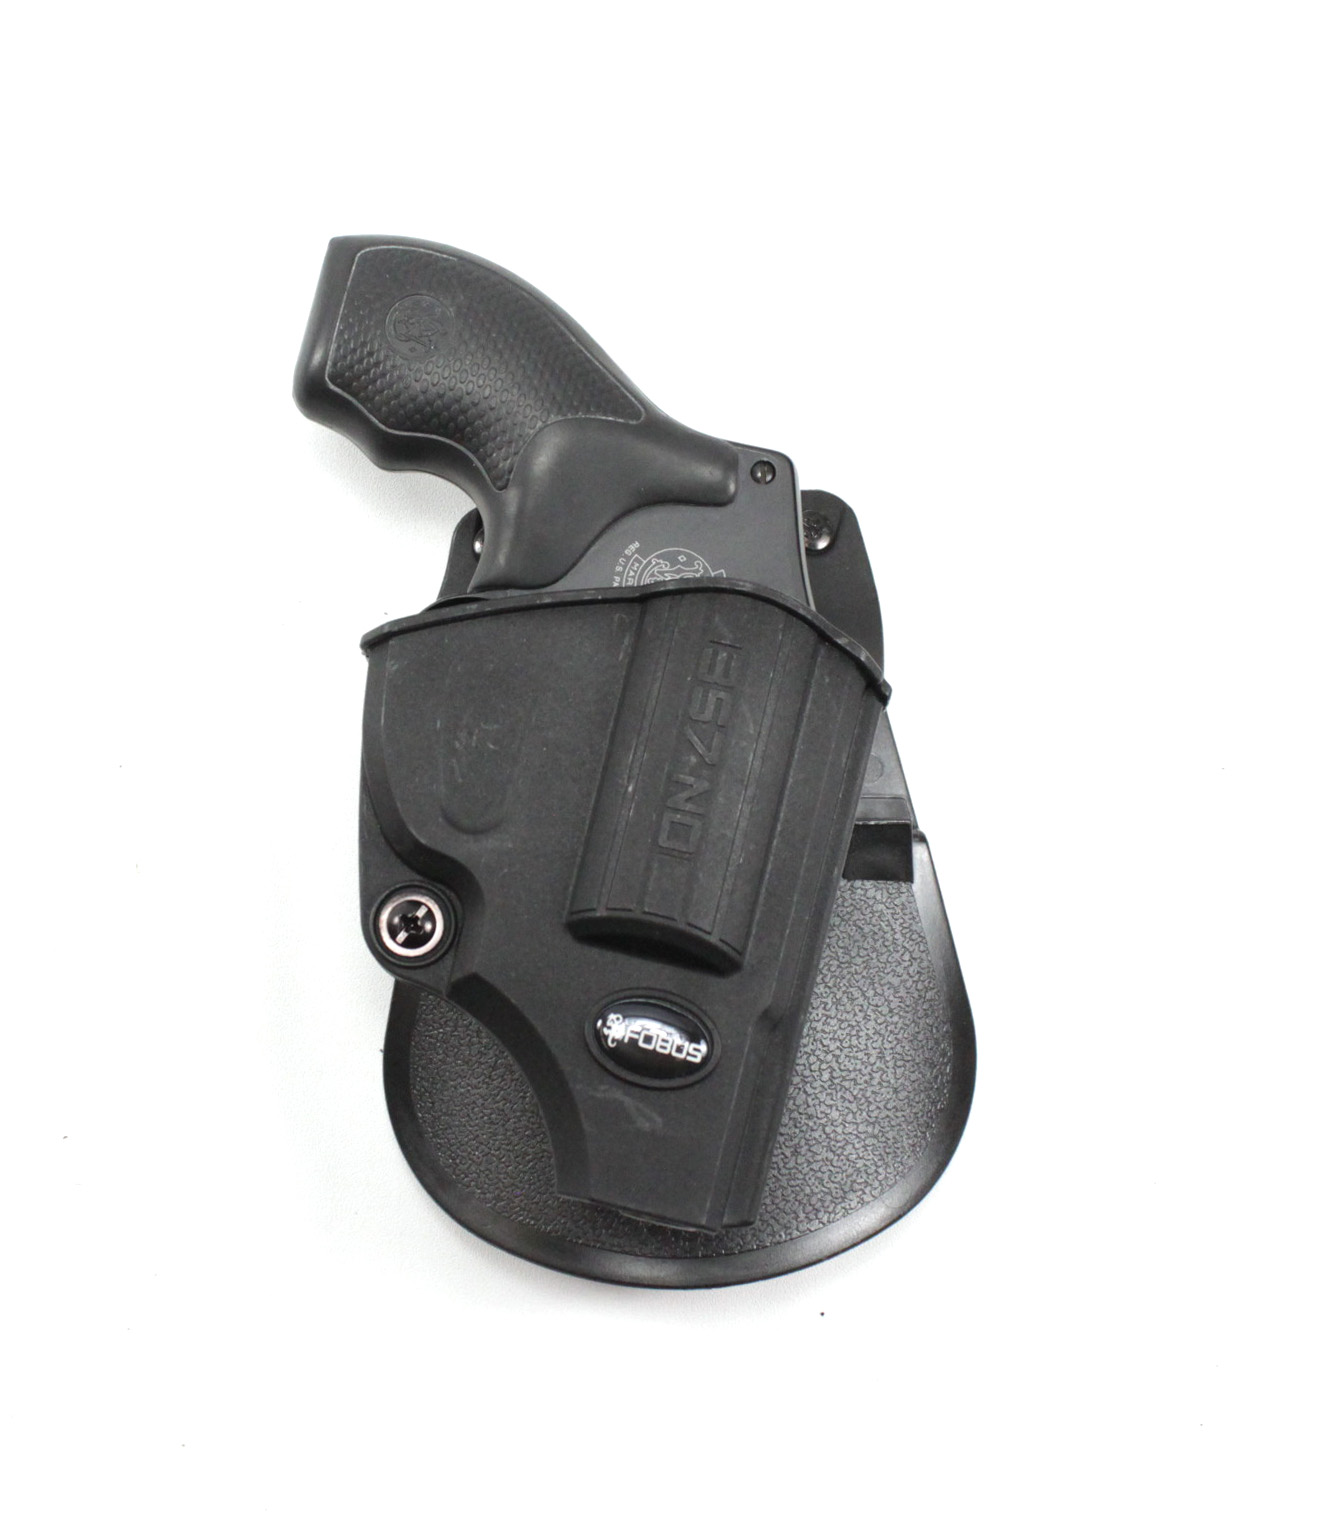 Fobus Paddle Holster Smith & Wesson J-Frame, Charter Arms, Rossi ...